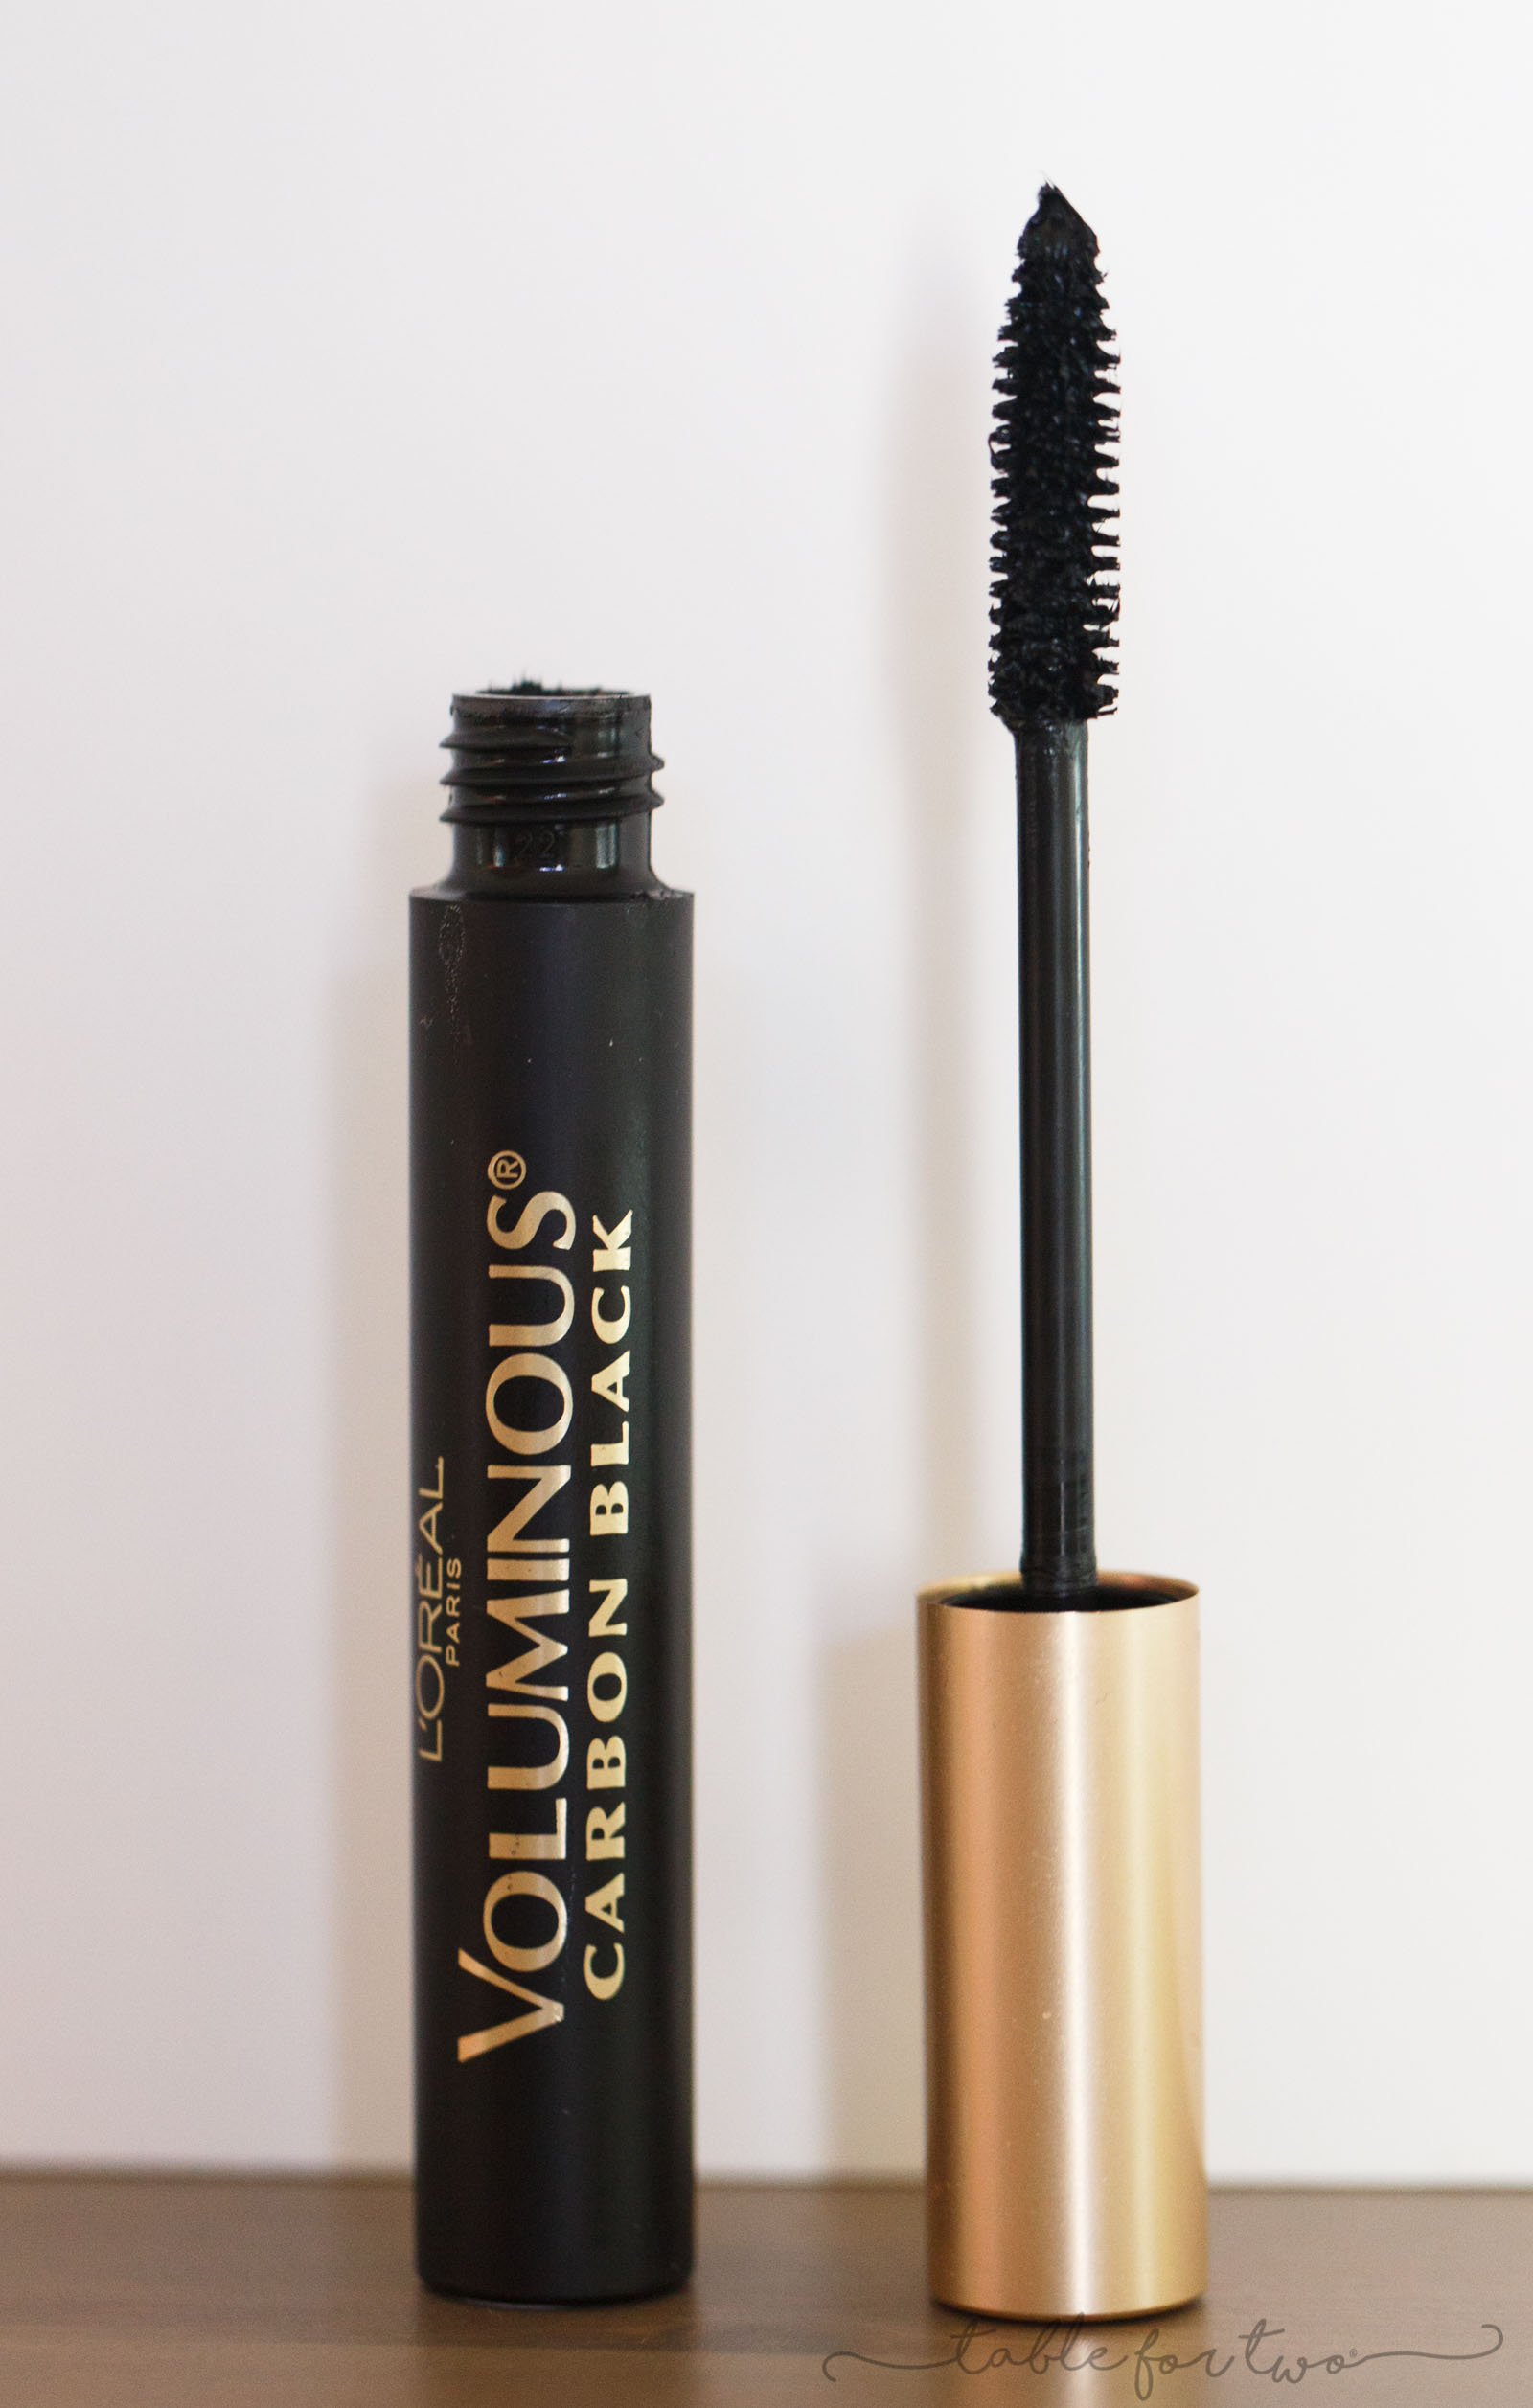 Have you ever wondered whether or not drugstore mascara works better than high-end mascara or vice versa? I tested out over 10 different mascara brands and here are my results!